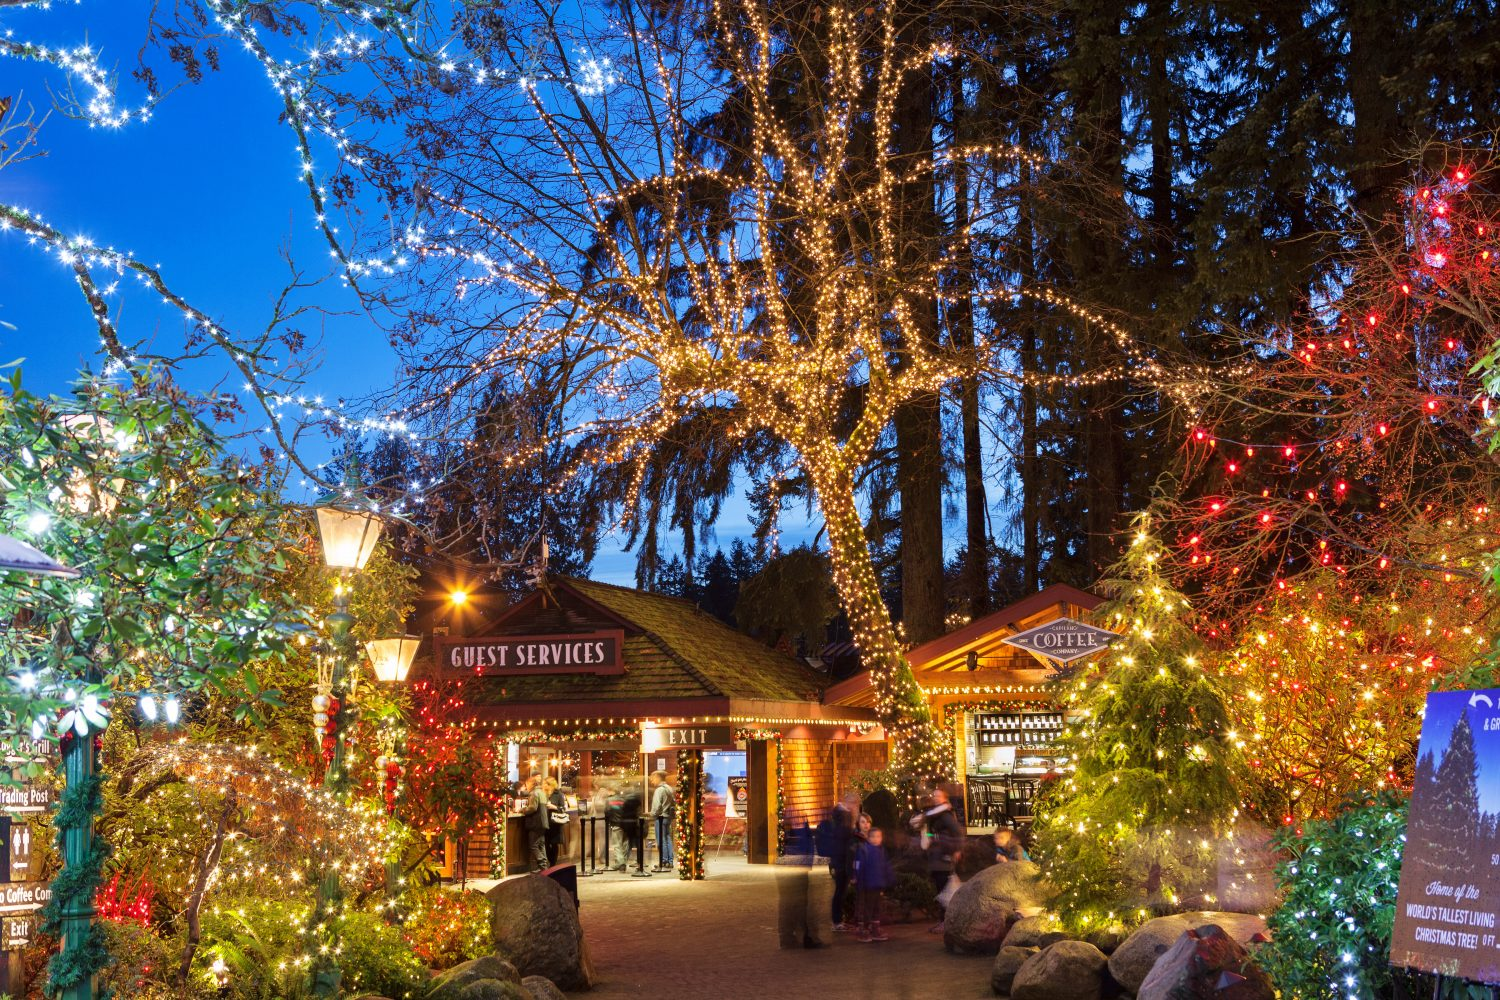 Capilano Suspension Bridge Park - How to spend Holidays in Vancouver